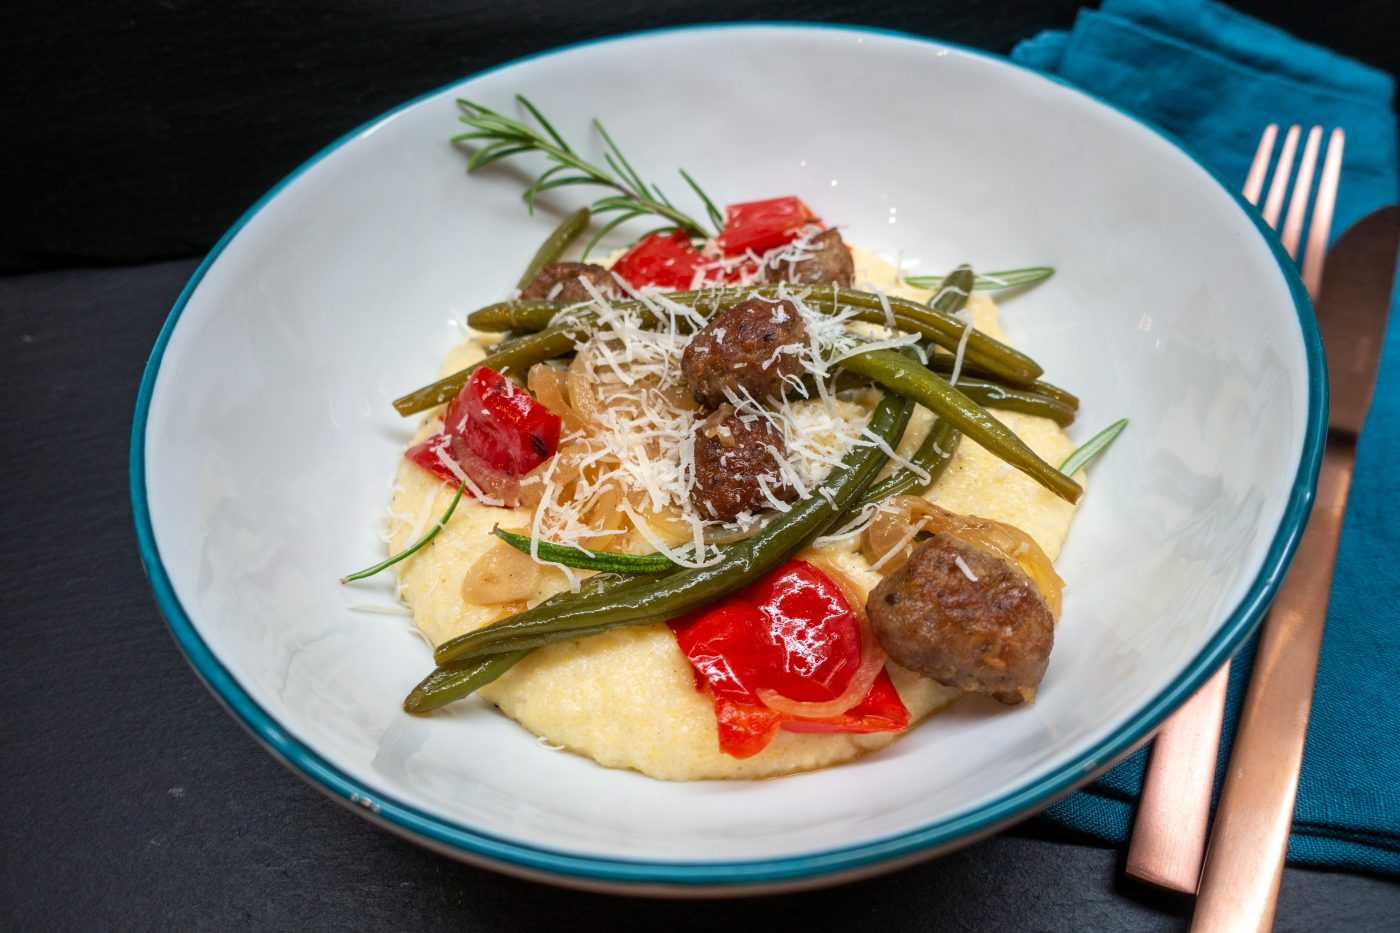 Fennel meatballs with vegetables on creamy polenta